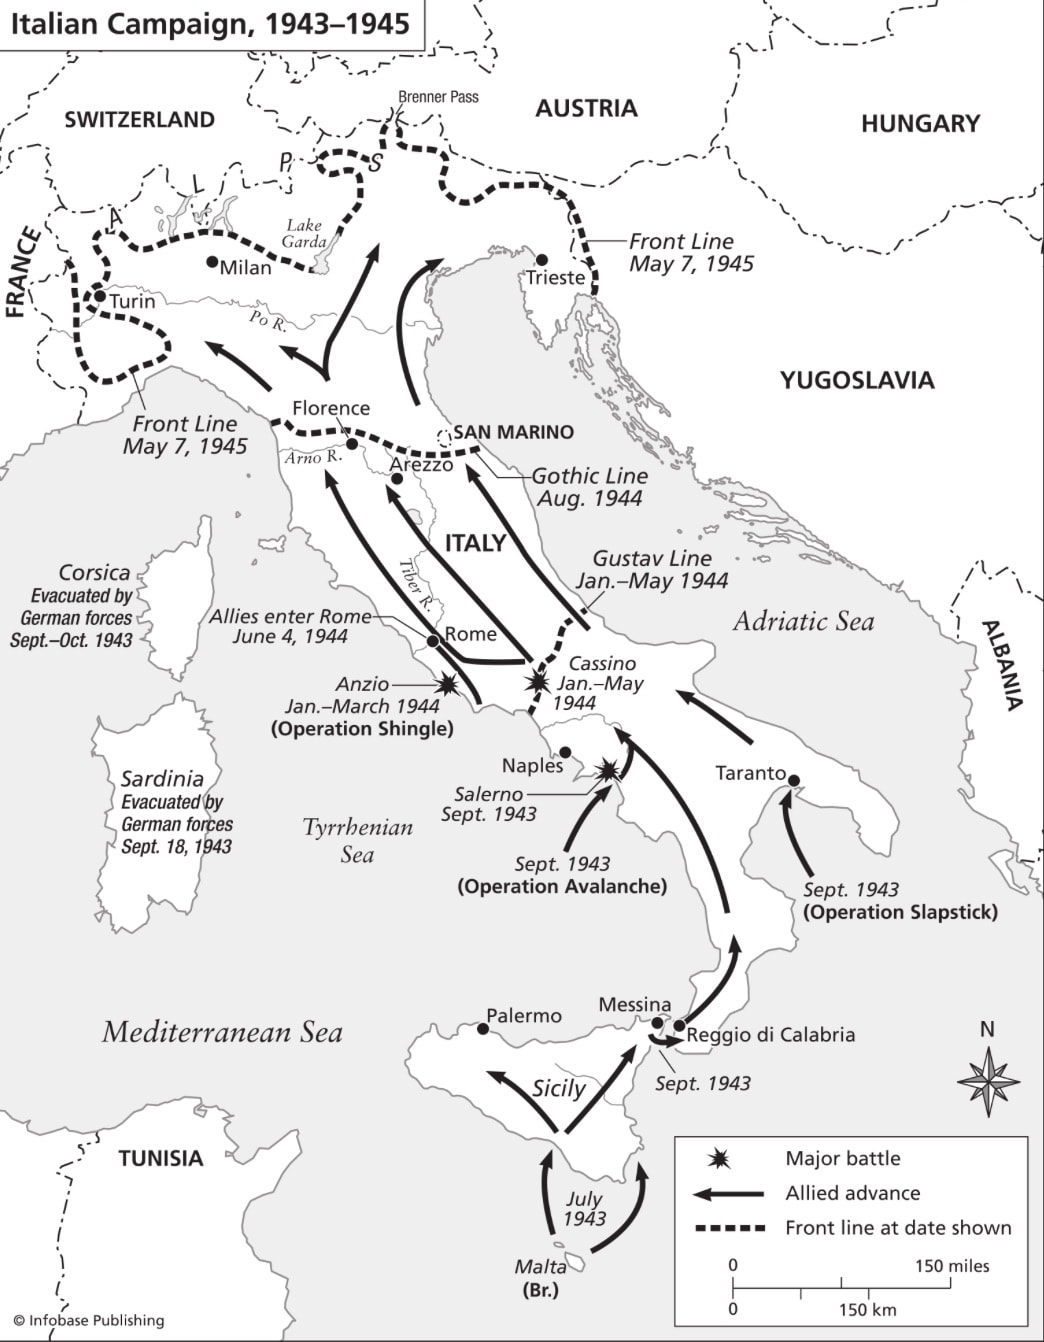 The Allied Campaign in Italy